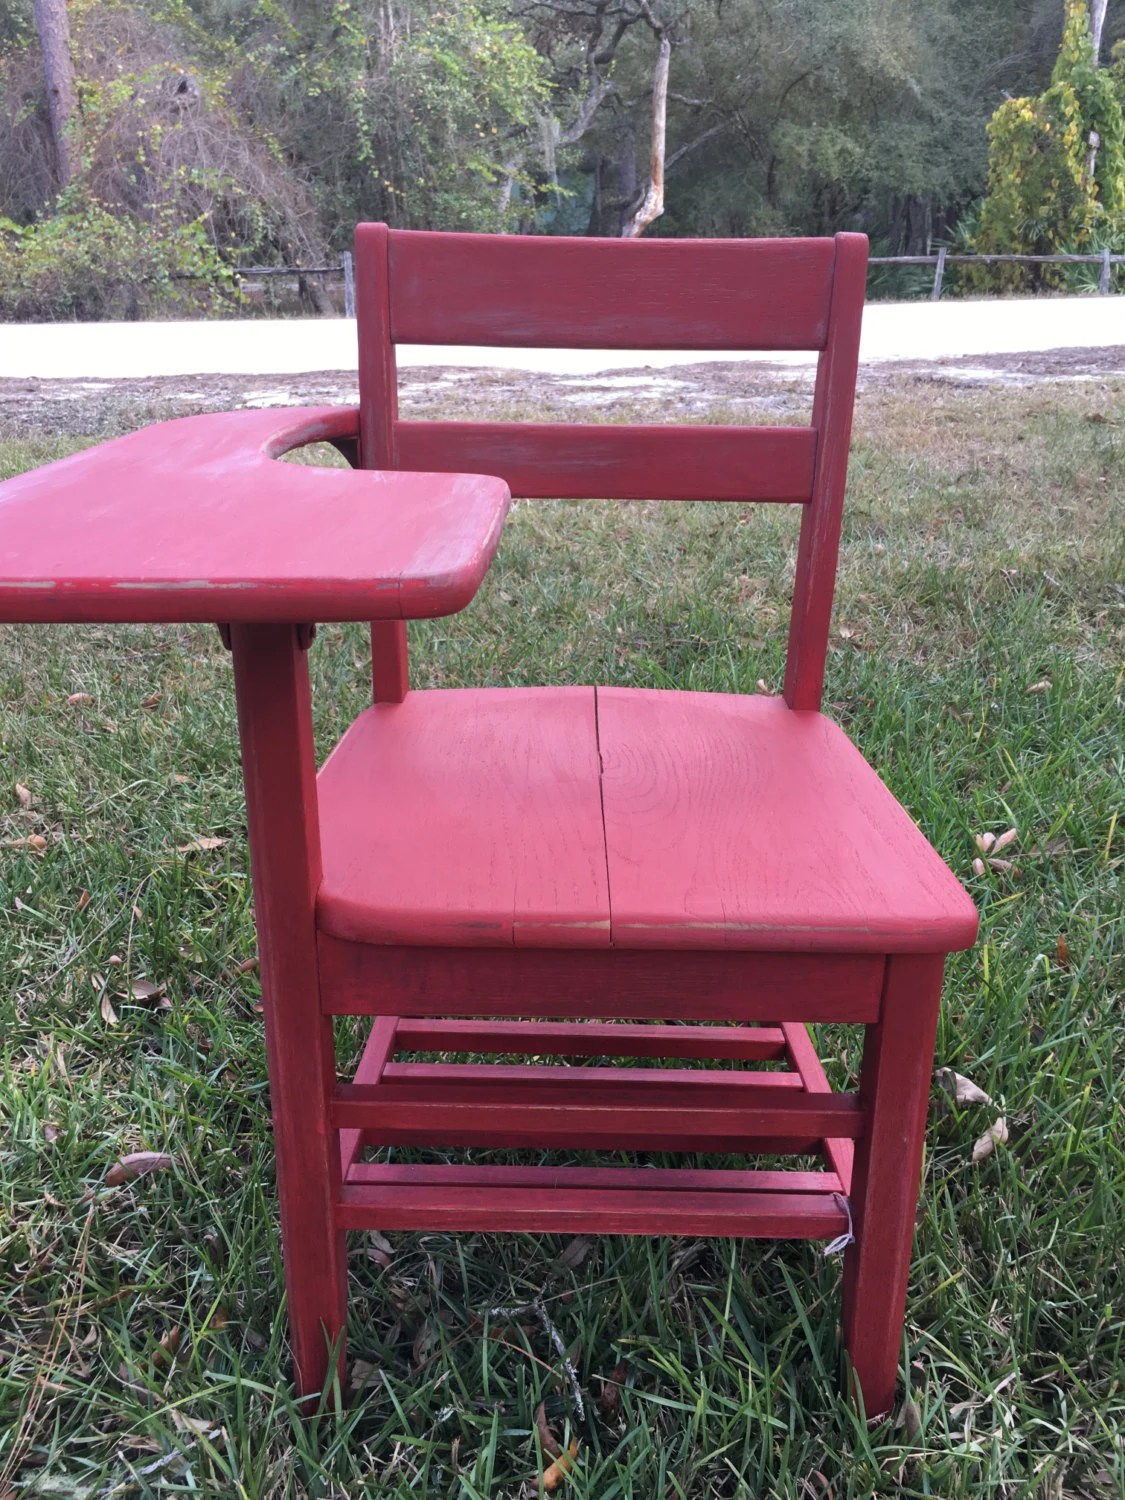 red childrens desk chair ikea compact table and chairs vintage school children s farmhouse etsy image 0